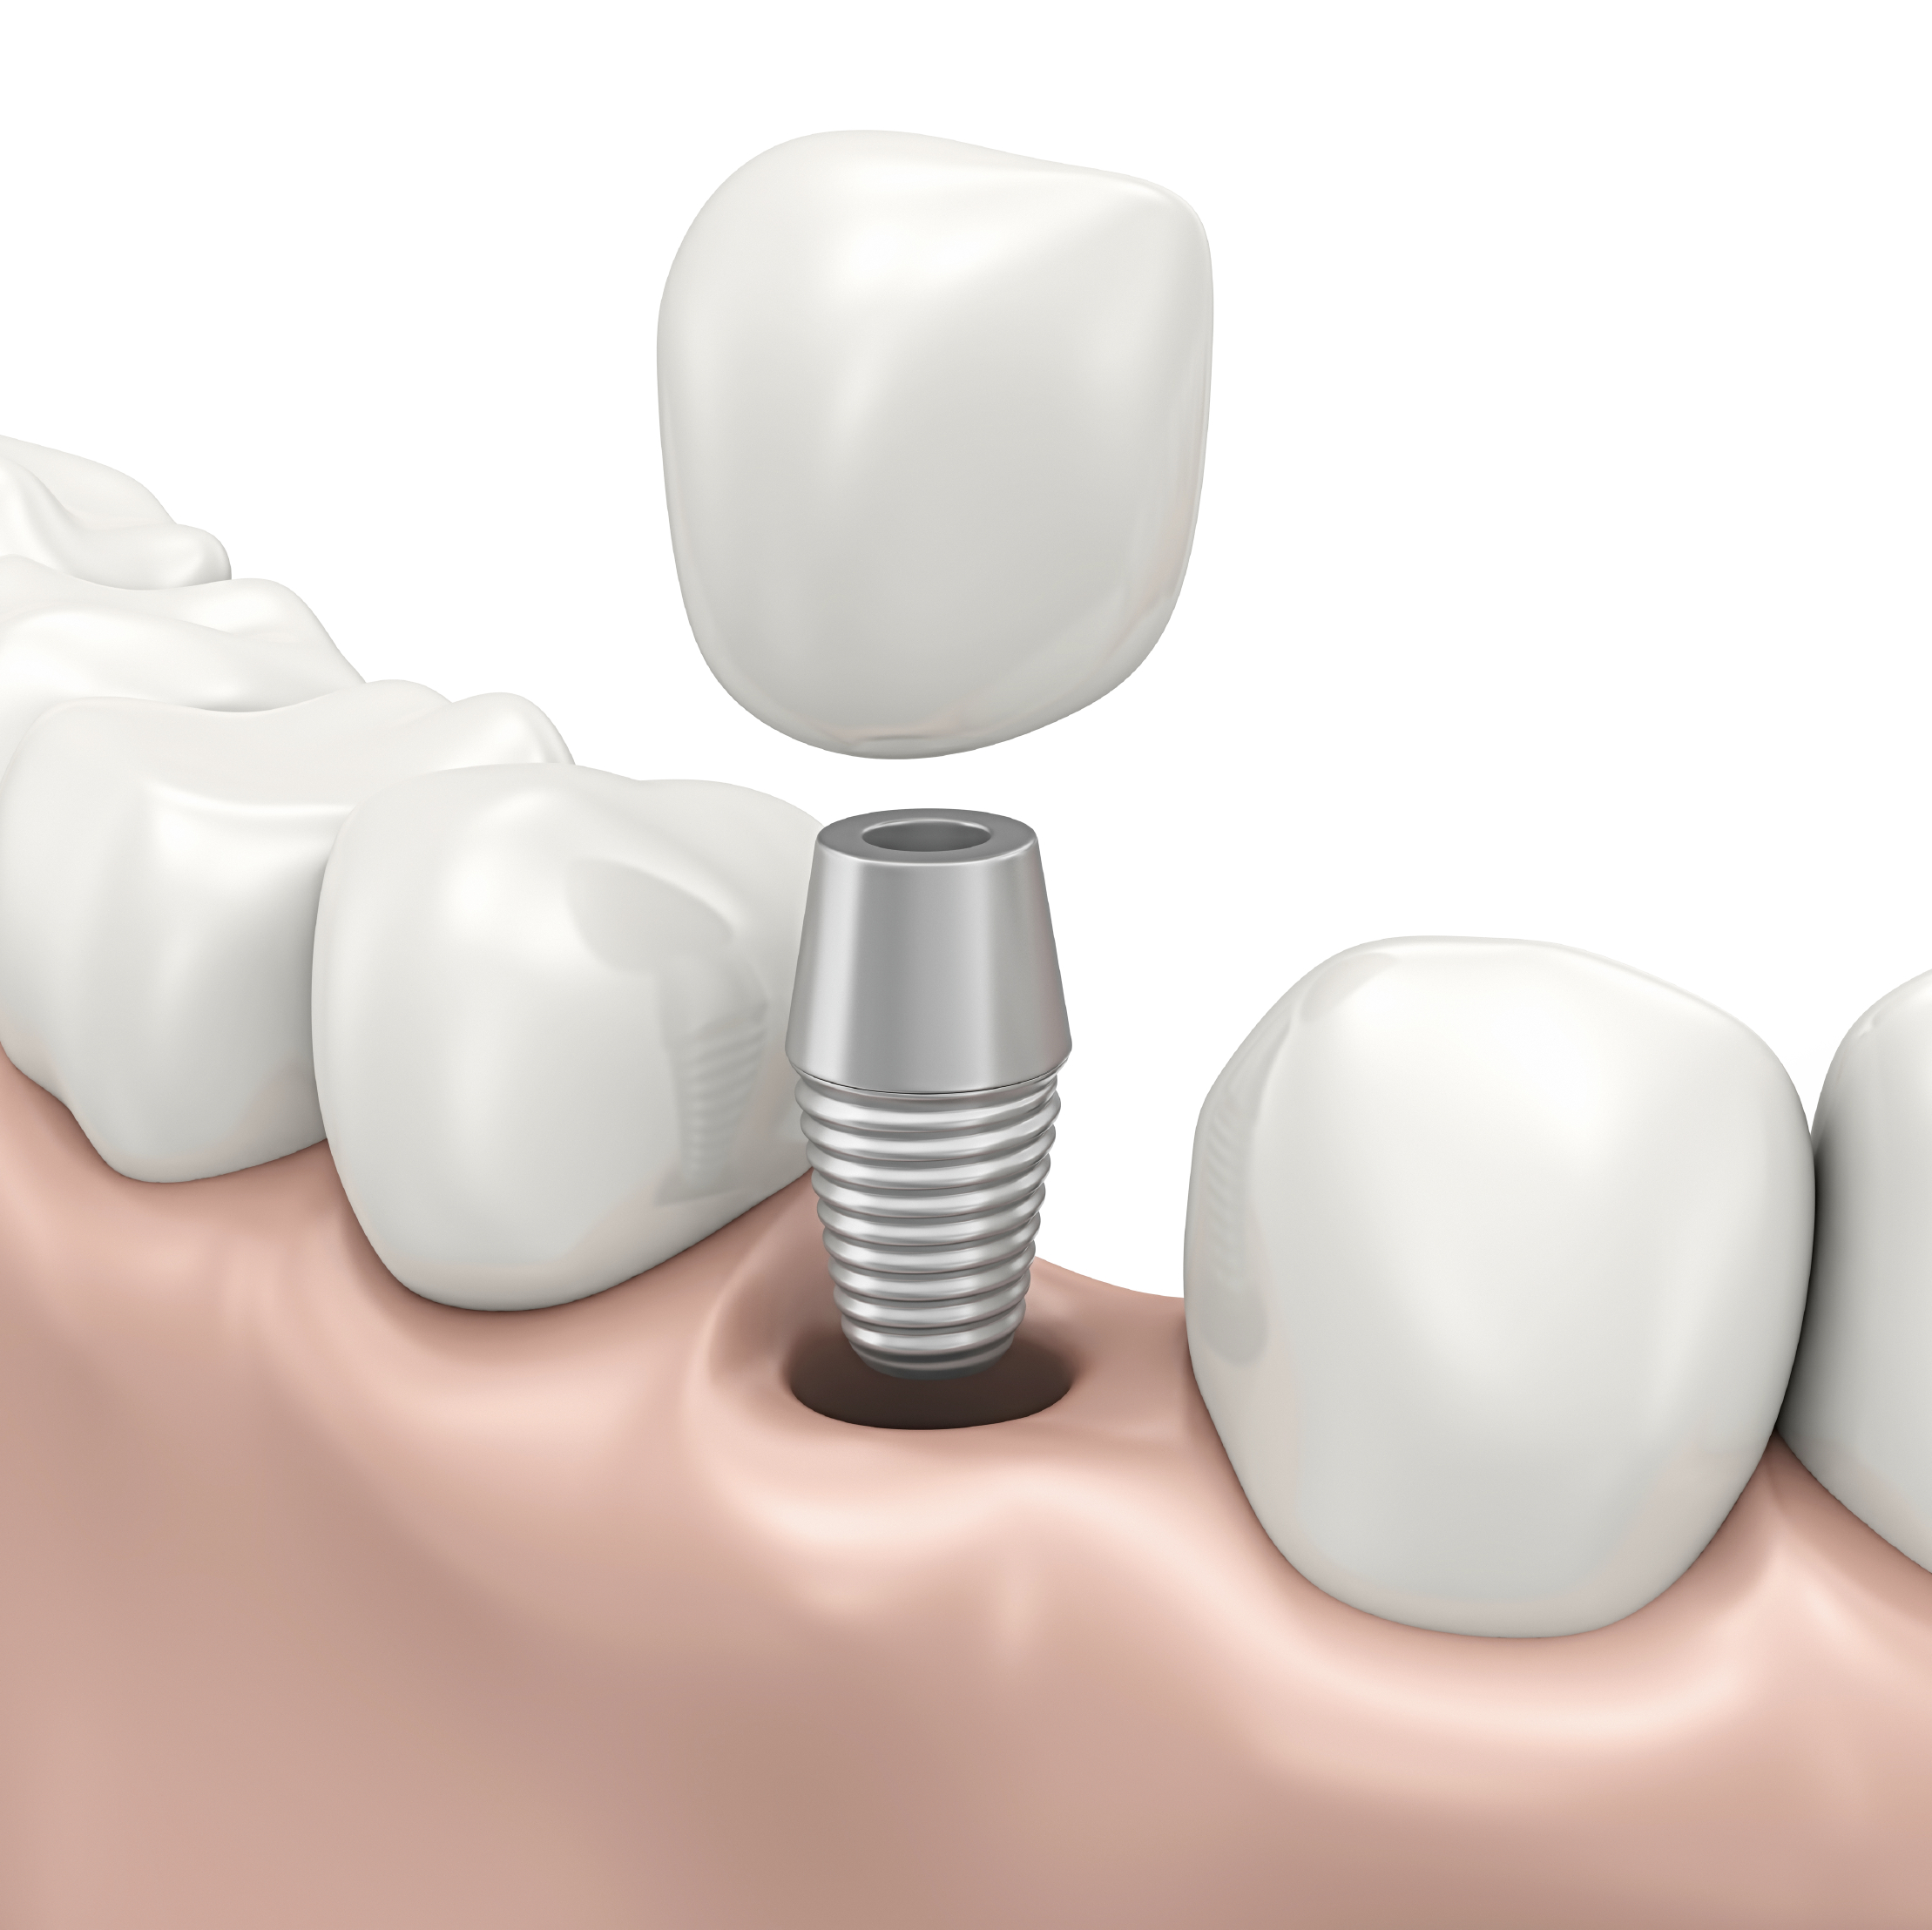 Dental Implants in Scottsdale